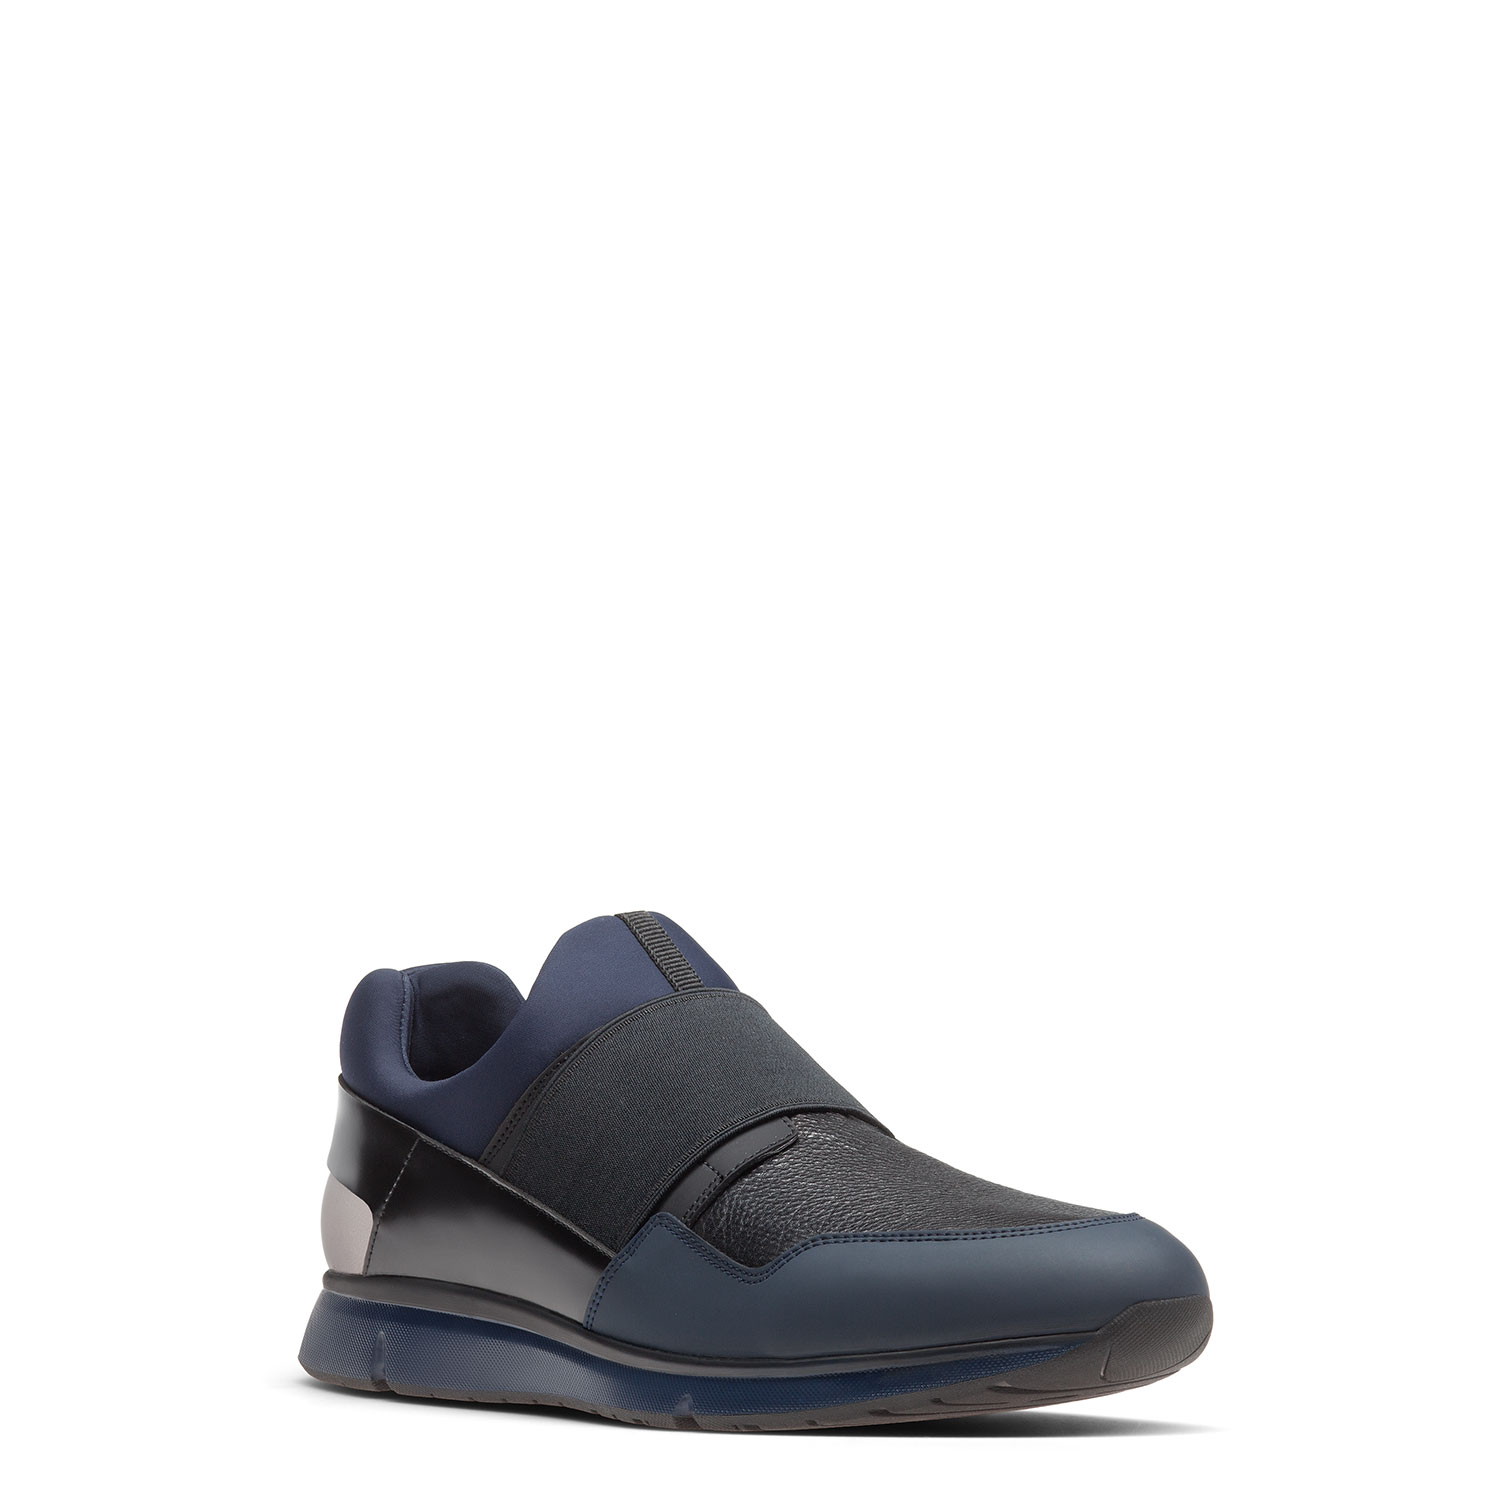 Men's shoes PAZOLINI YN-DON7-20